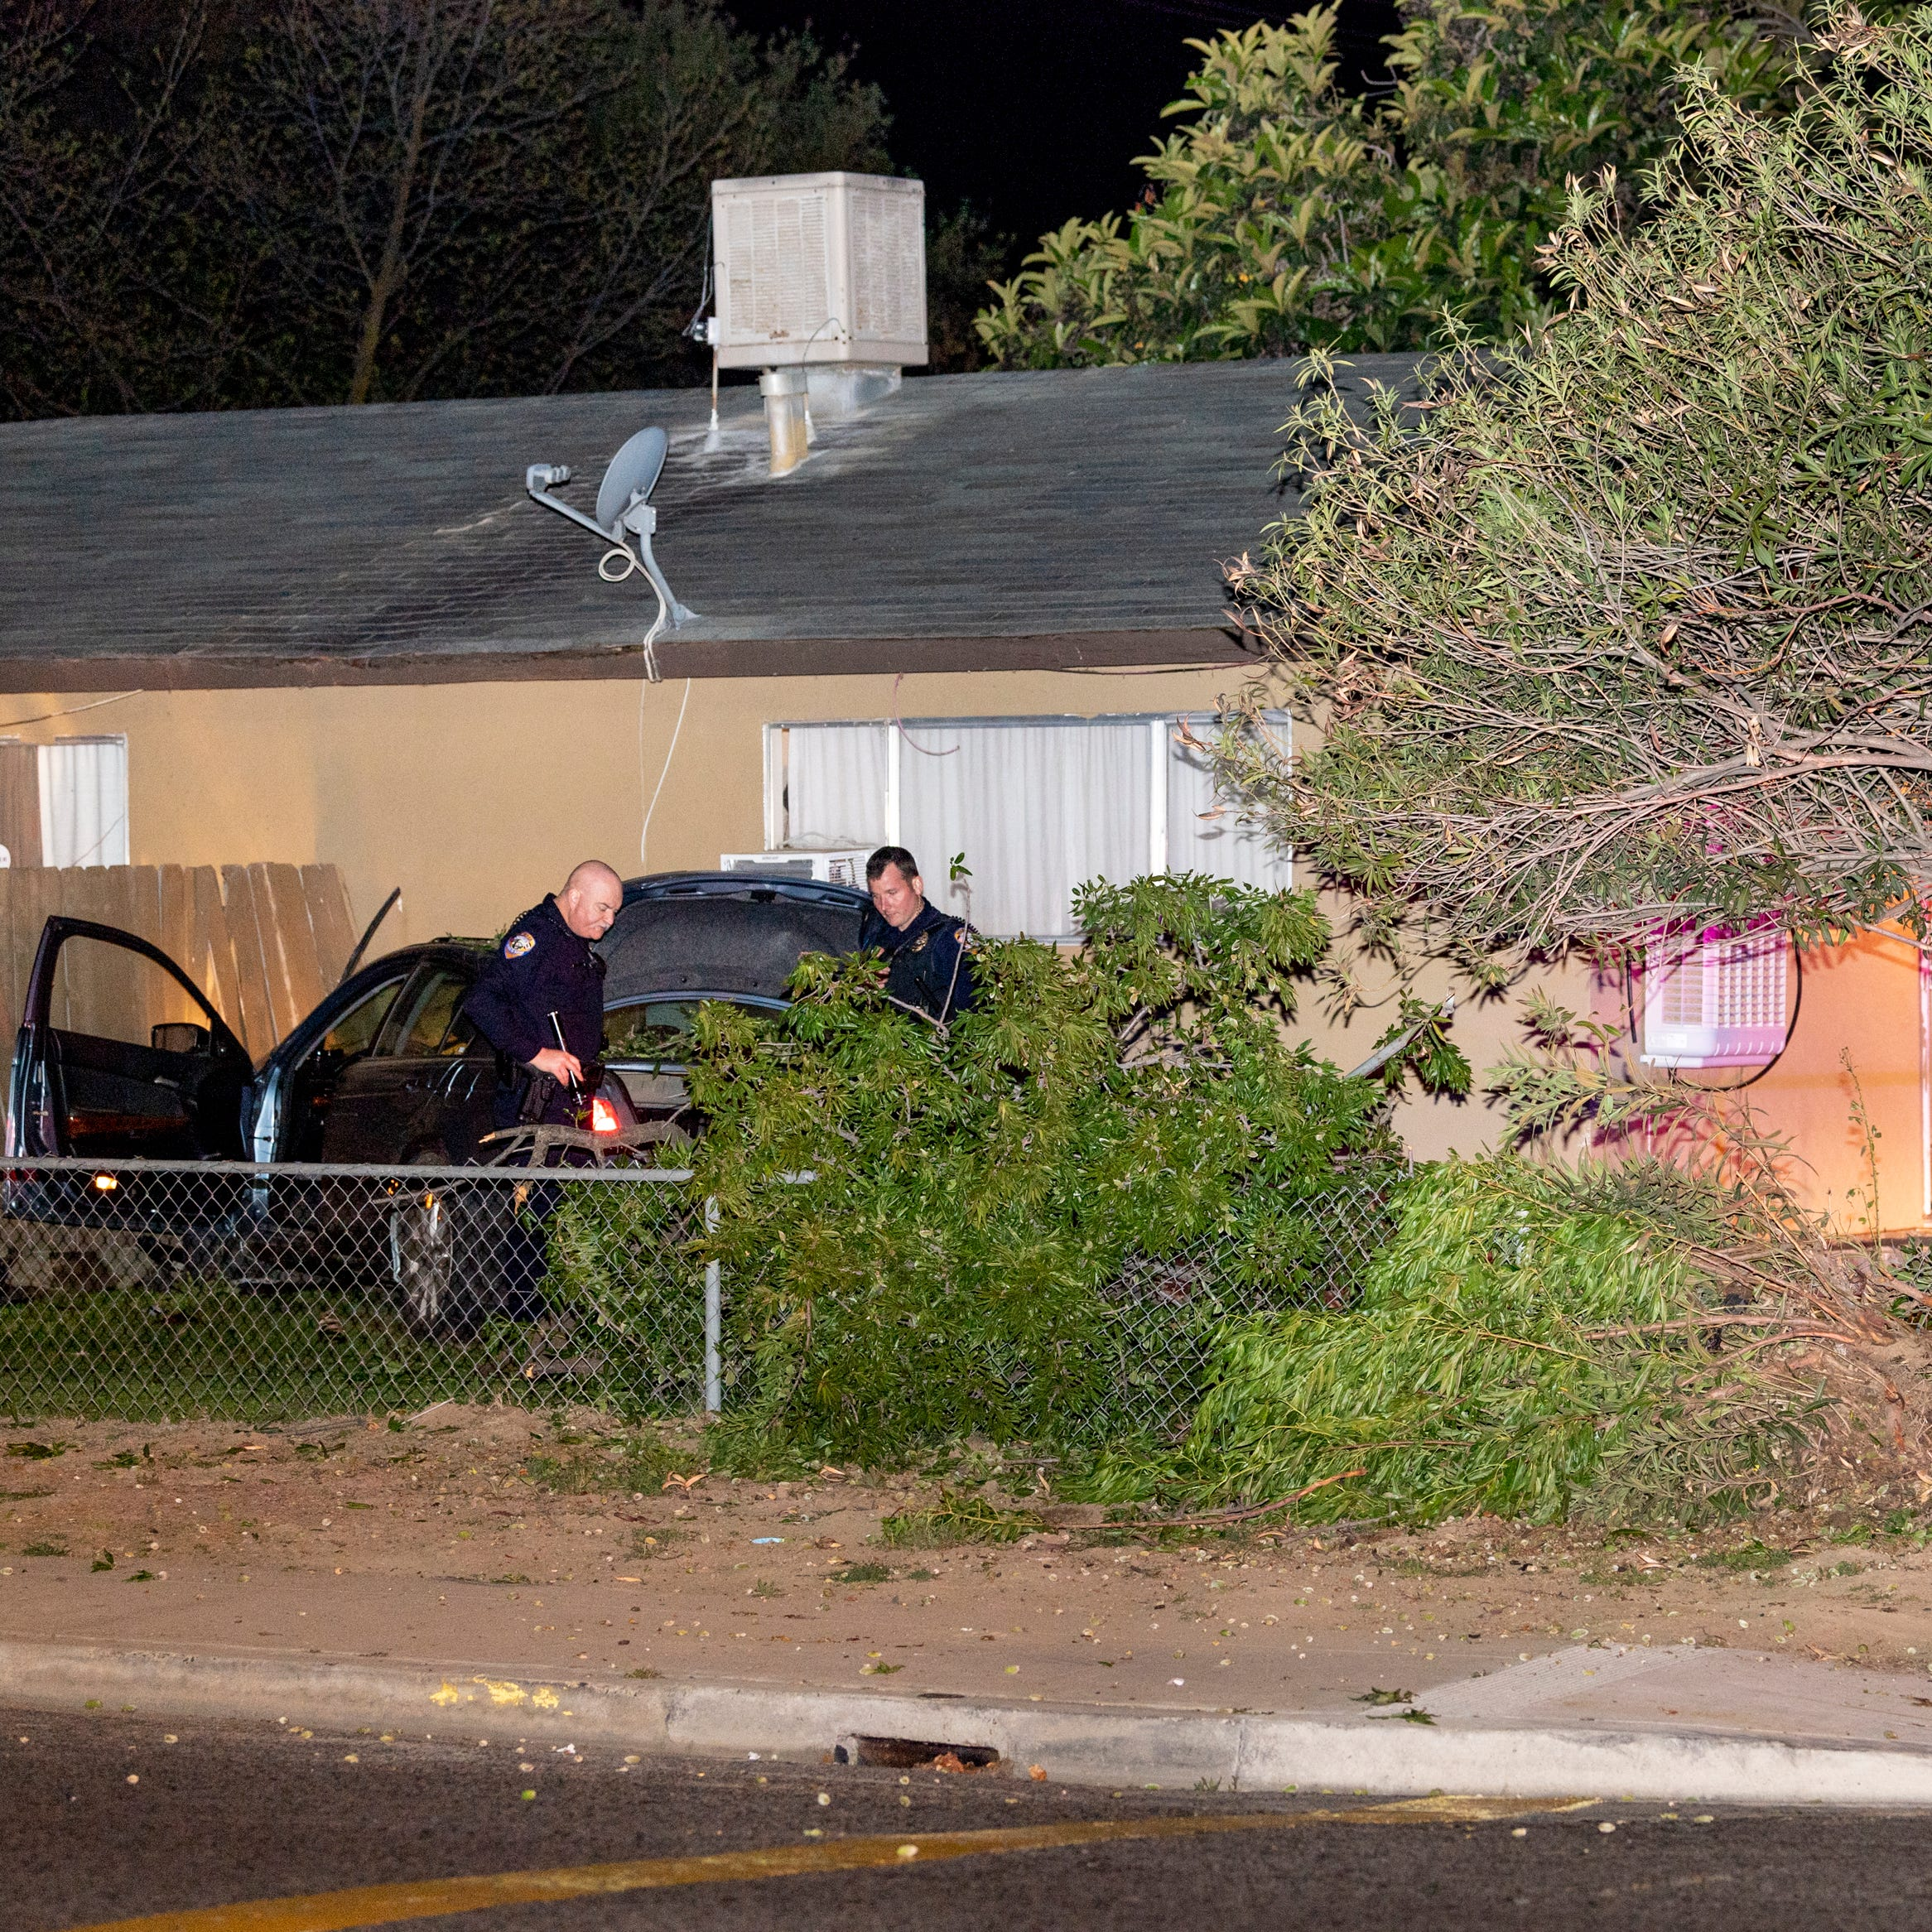 Suspected drunken driver crashes after Visalia police give chase